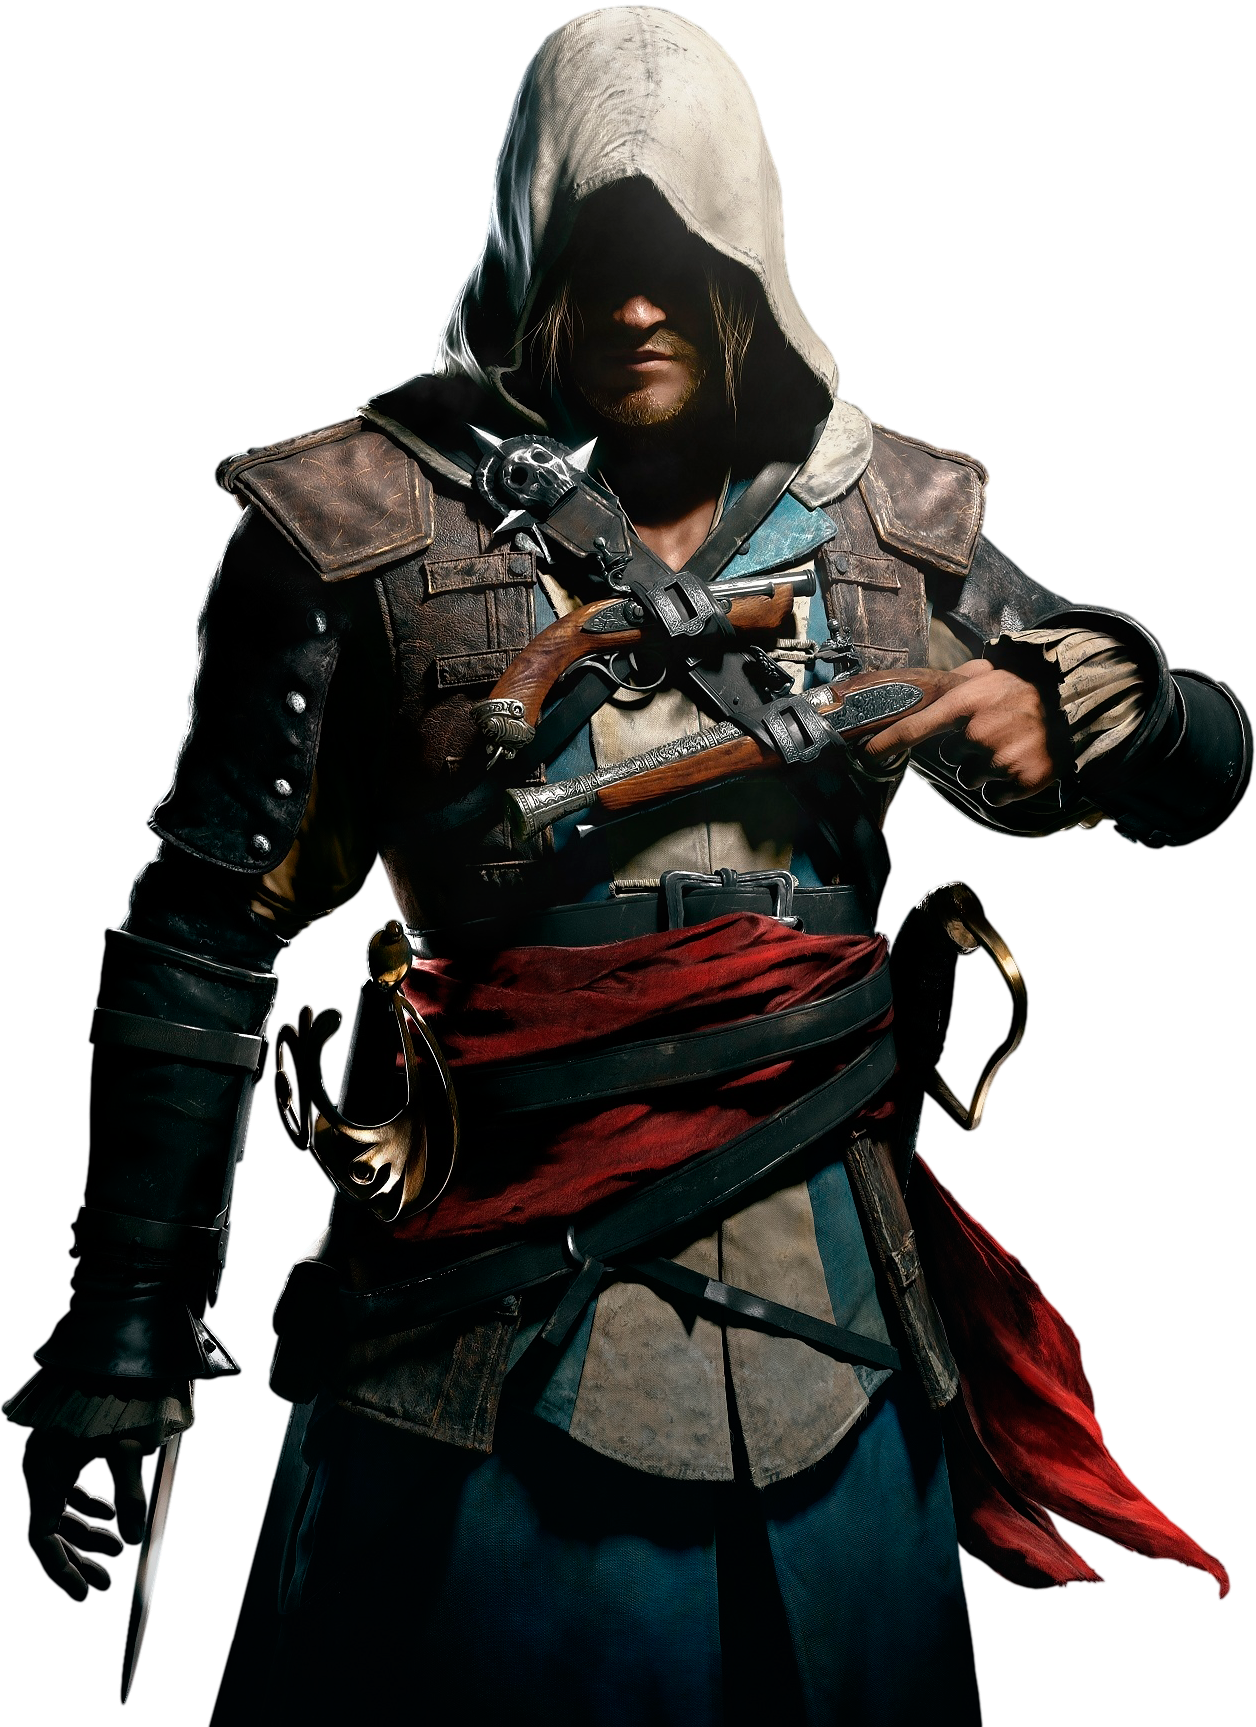 Assassin s creed black flag   edward kenway by ivances d5wxnuf